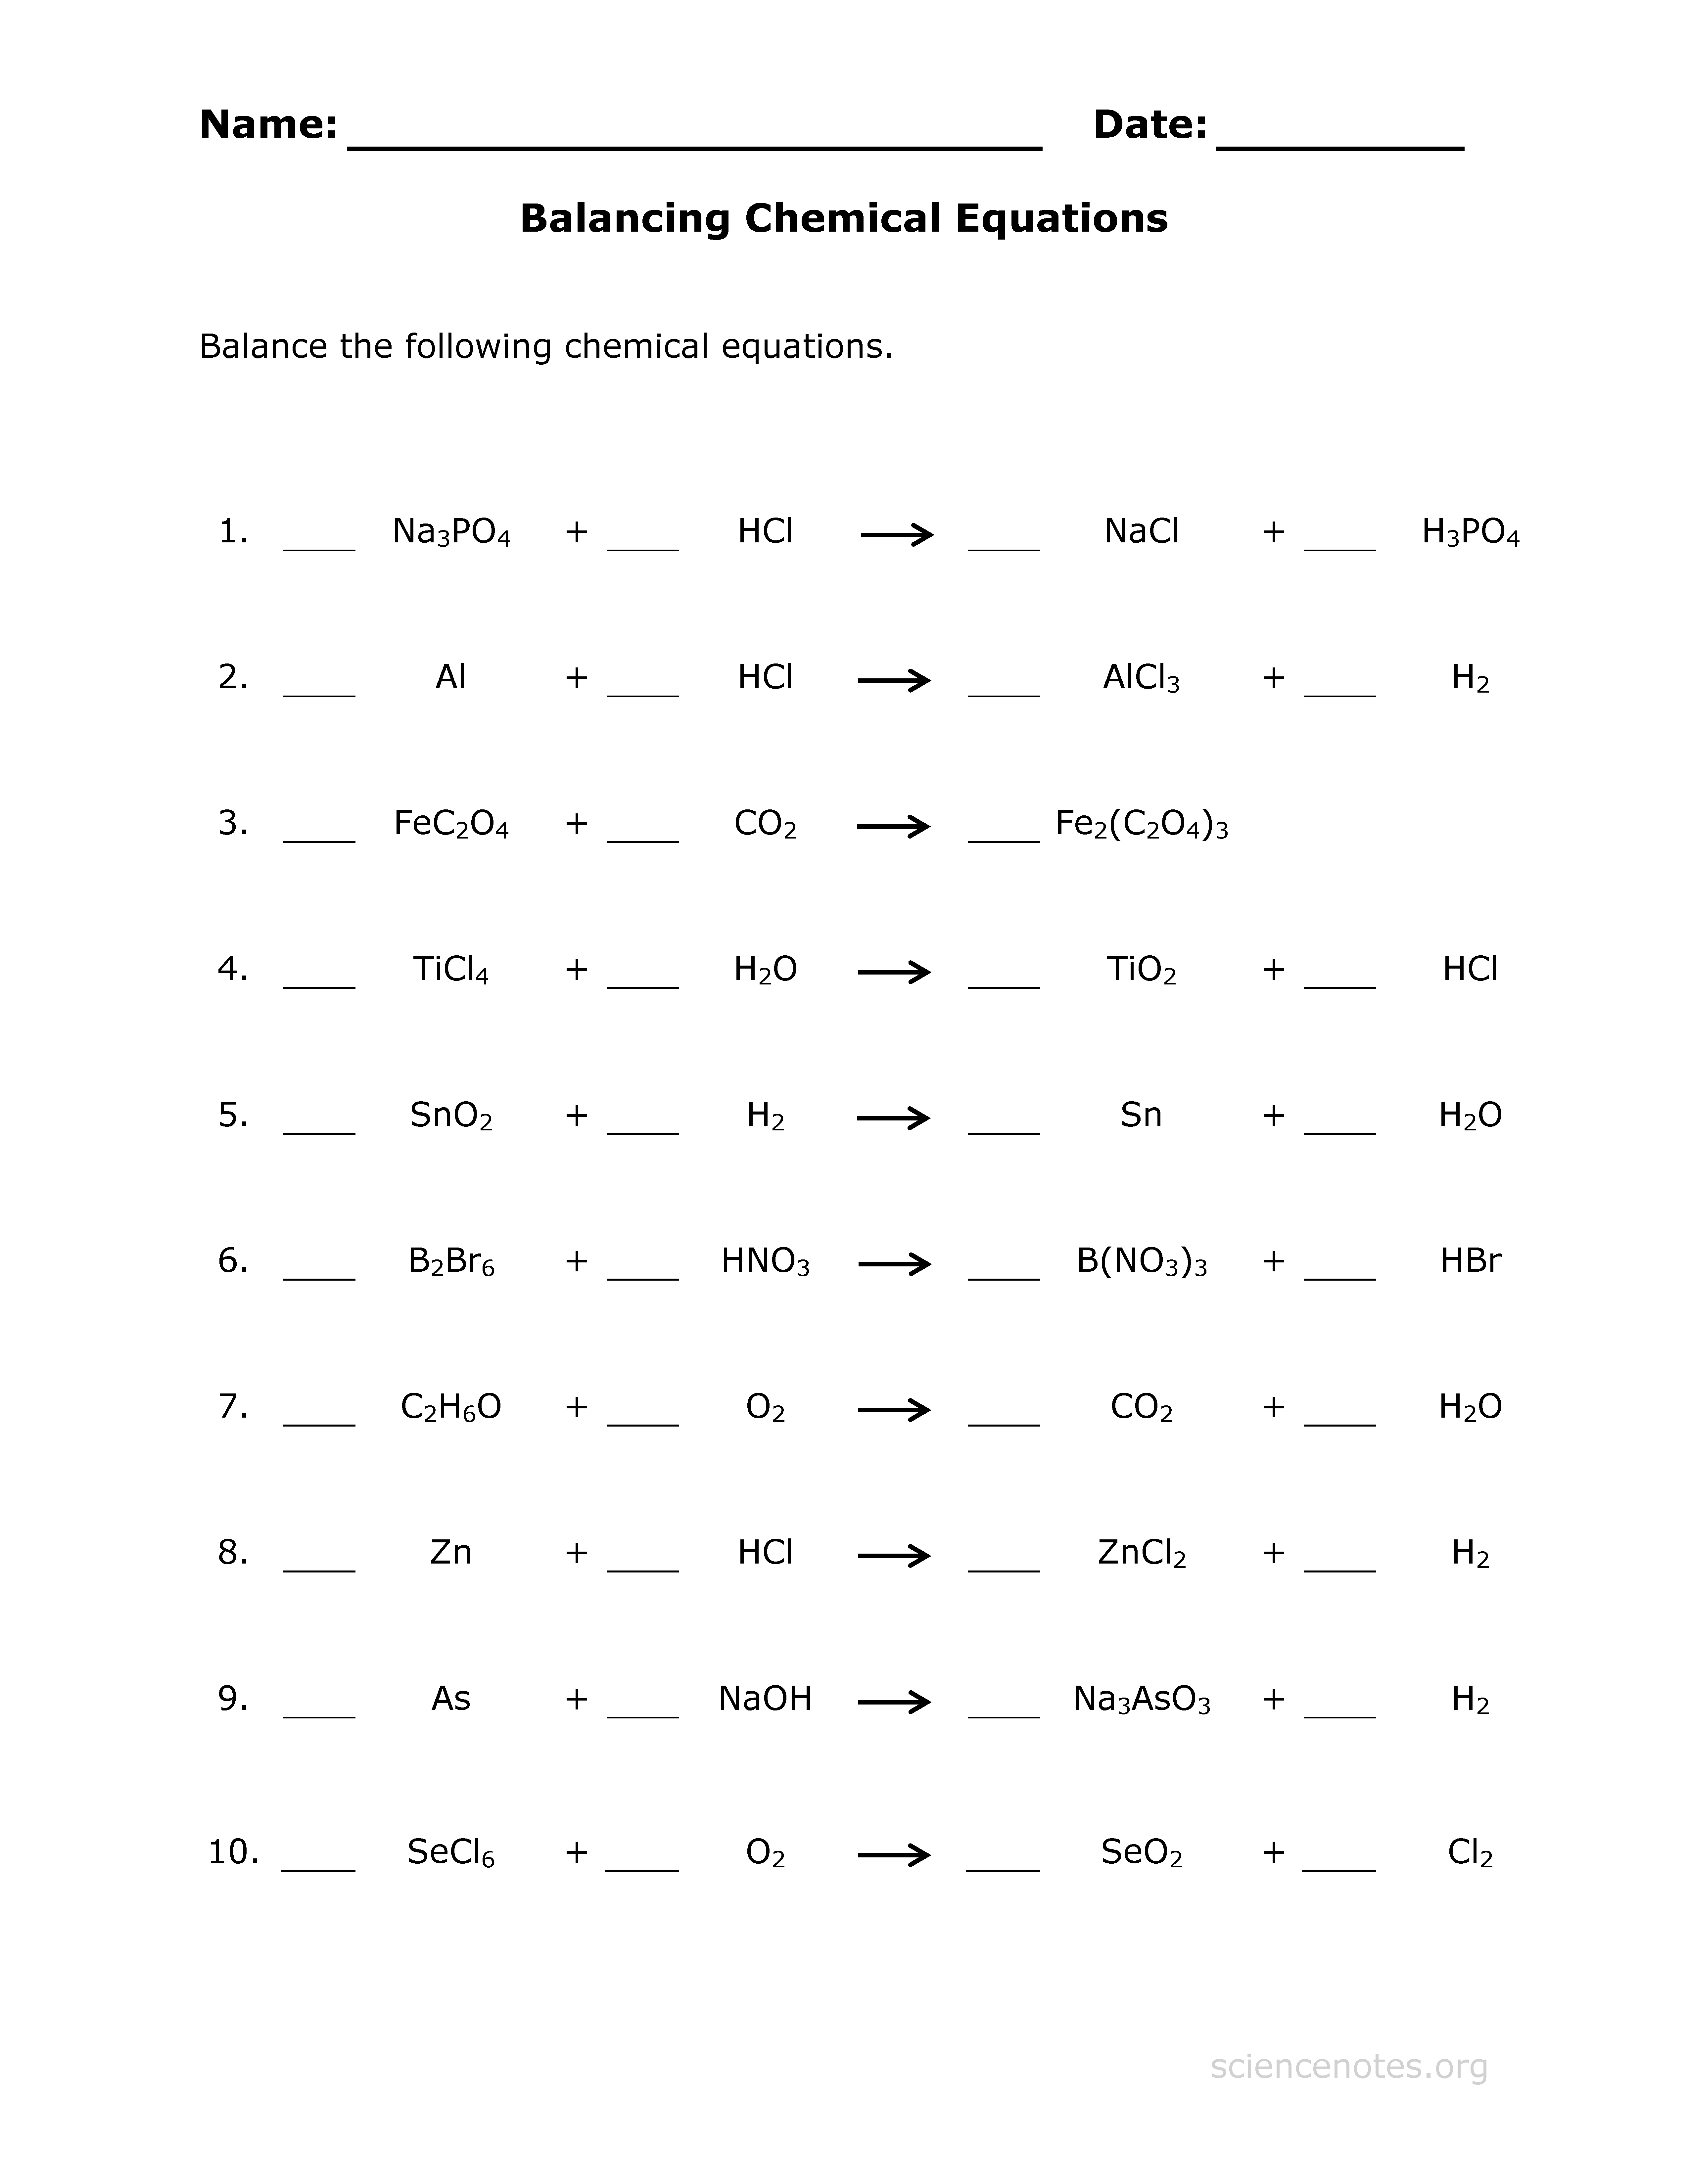 Balancing Equations Worksheet 1 Answers Worksheets for all ...